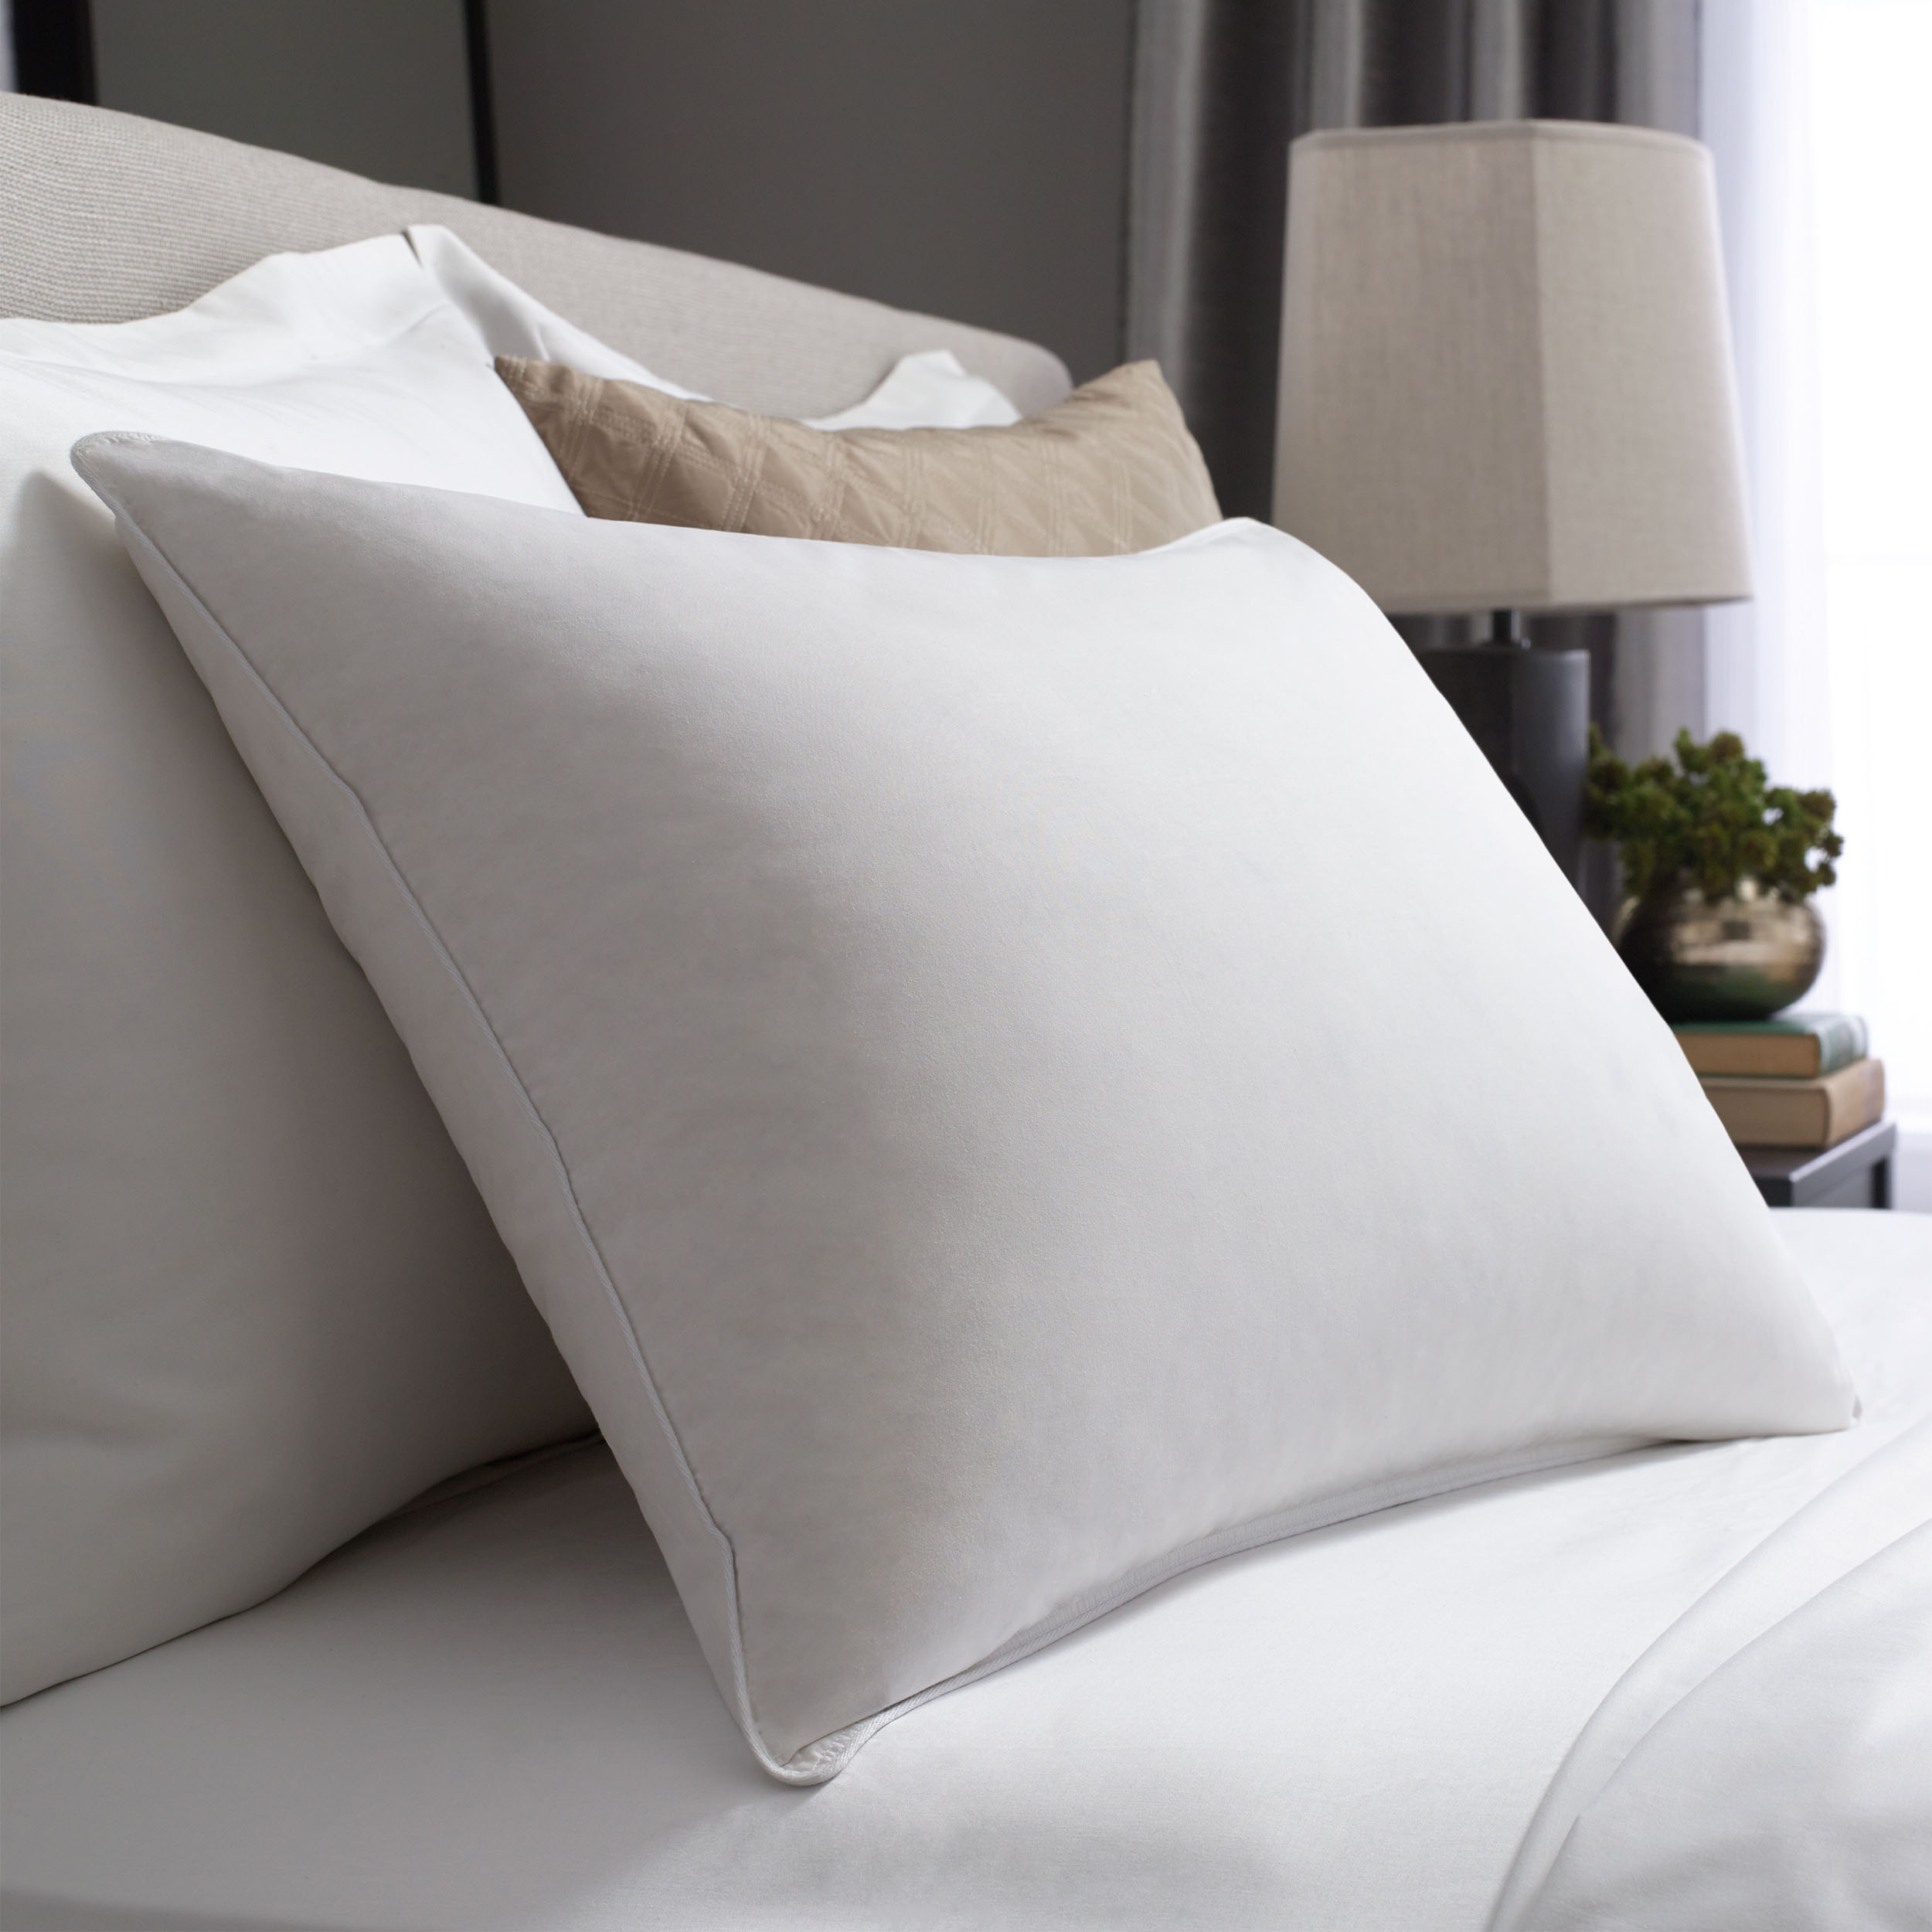 The Hotel Collection Best Hotel Pillows Pacific Coast